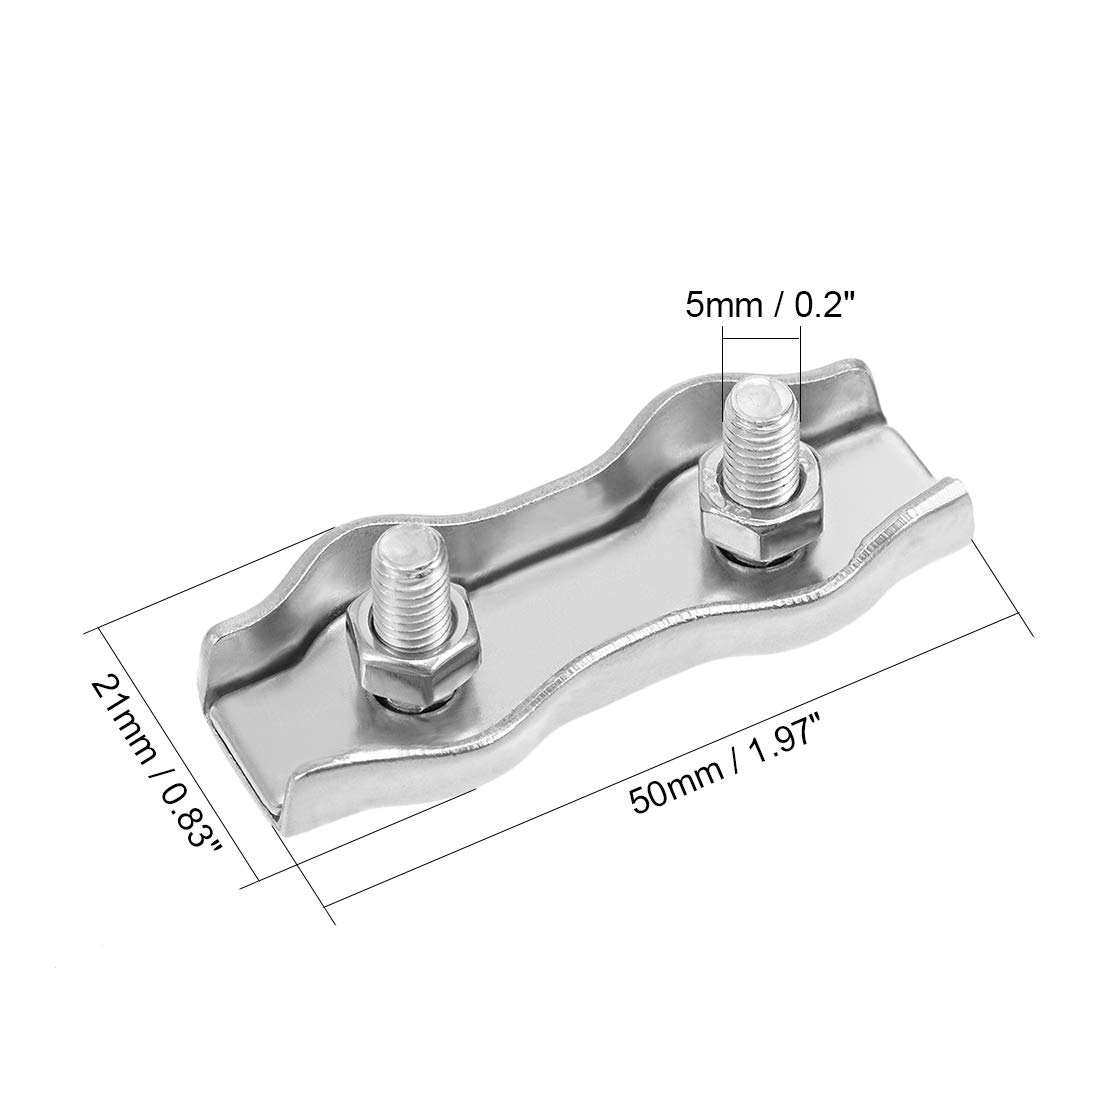 sourcing map 4Pcs 304 Stainless Steel Duplex Wire Rope Clip Cable Clamp Suit for 3mm-4mm Rope